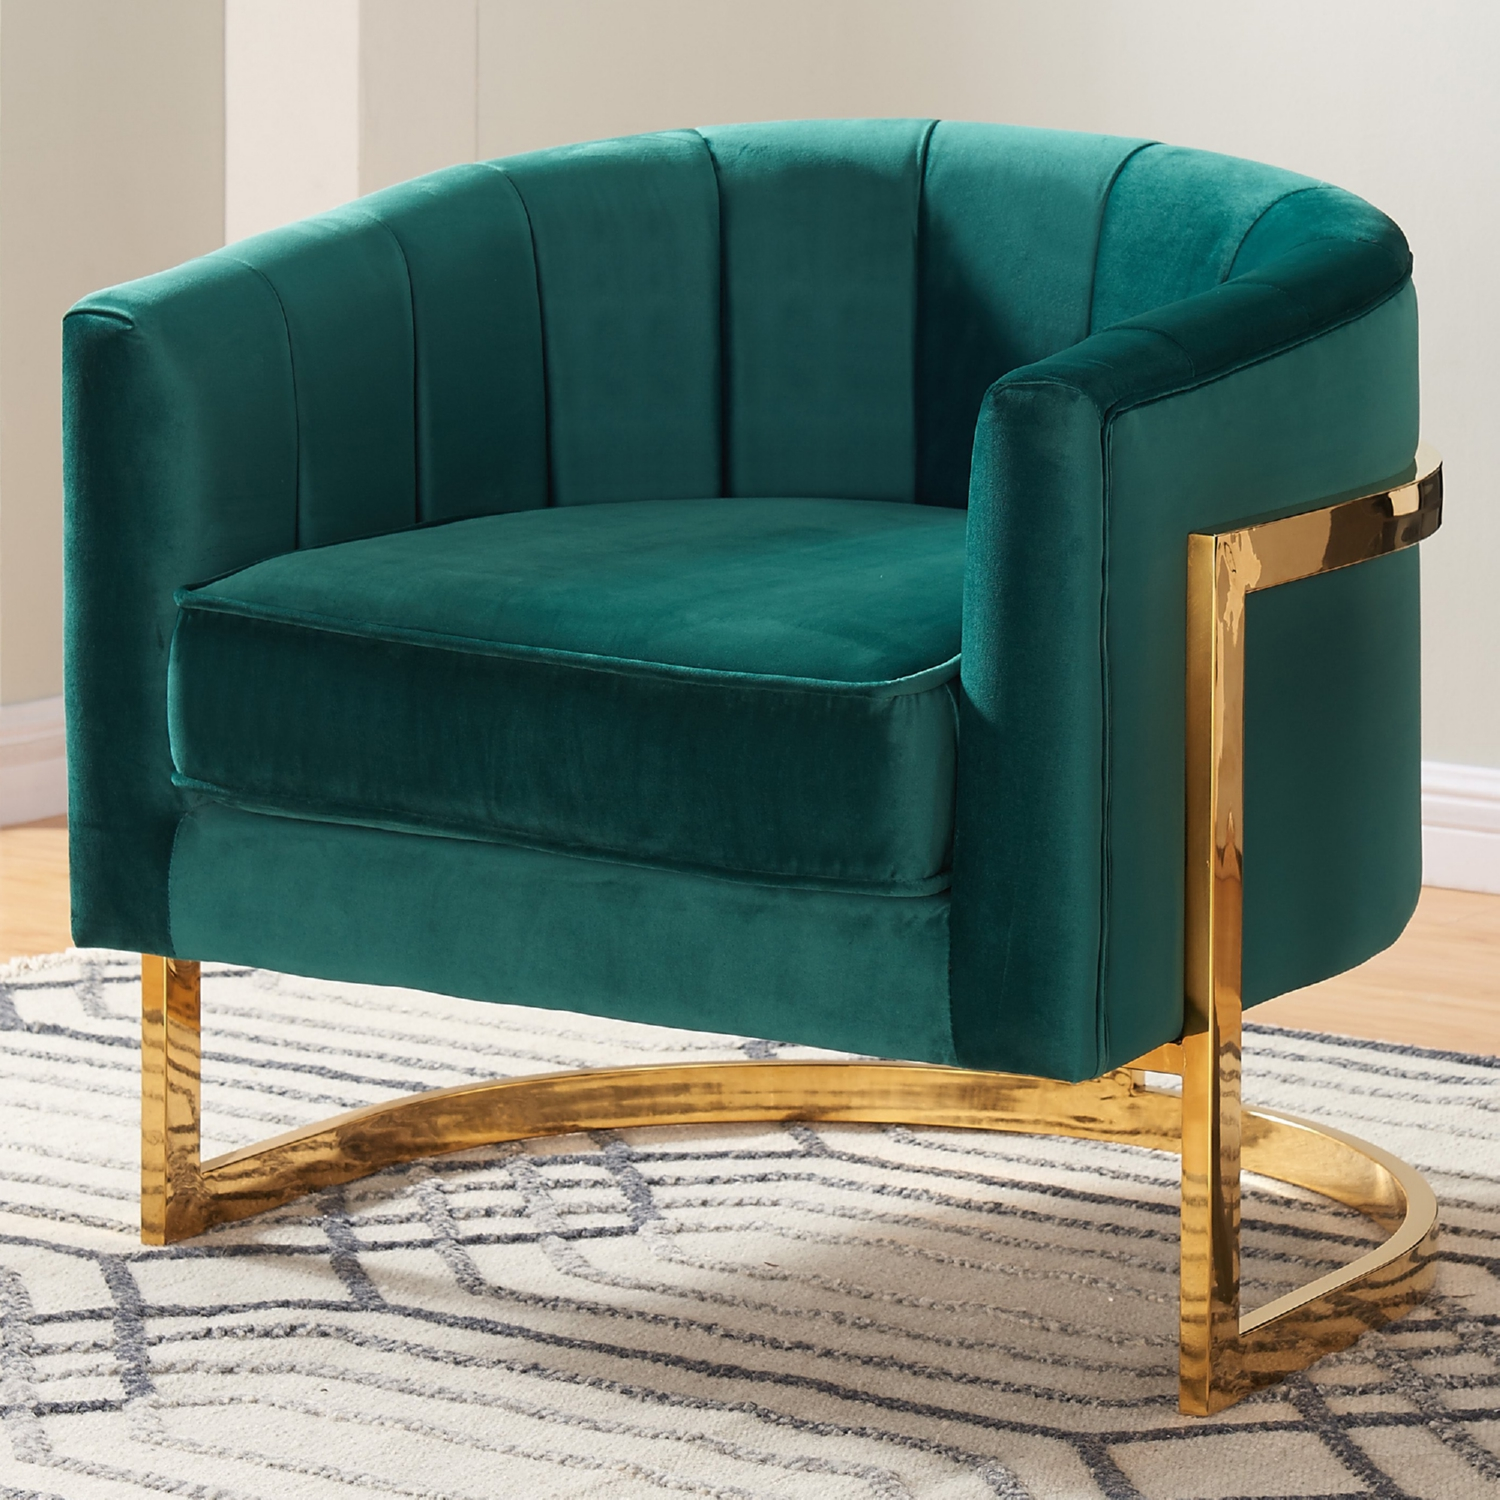 Meridian Furniture 515Green Carter Accent Chair in Green